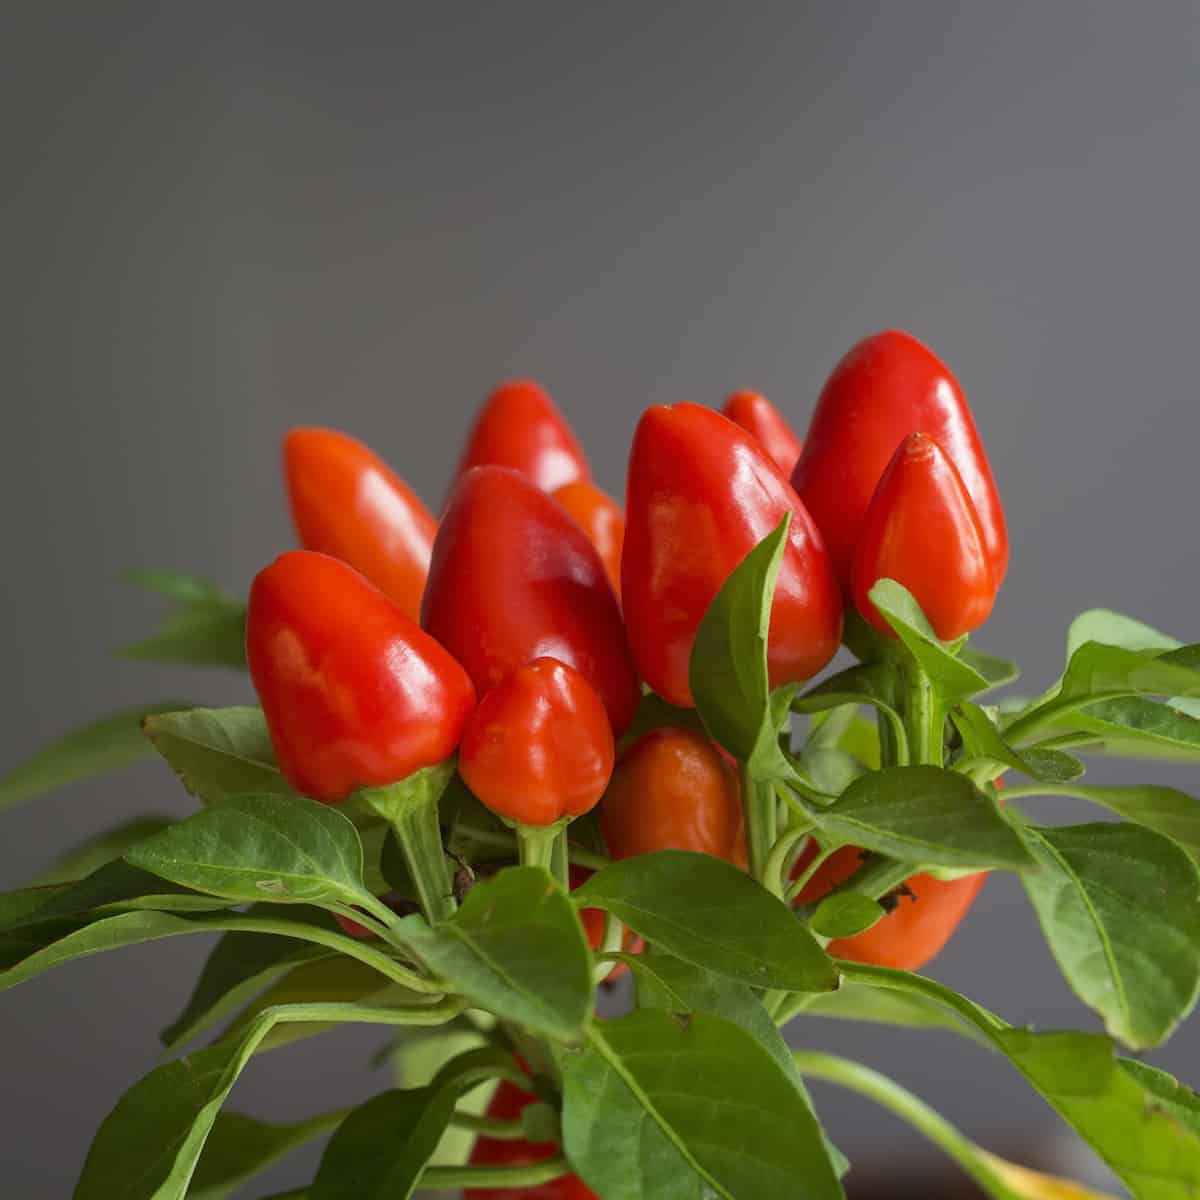 Growing Hot Peppers Indoors: The Basics